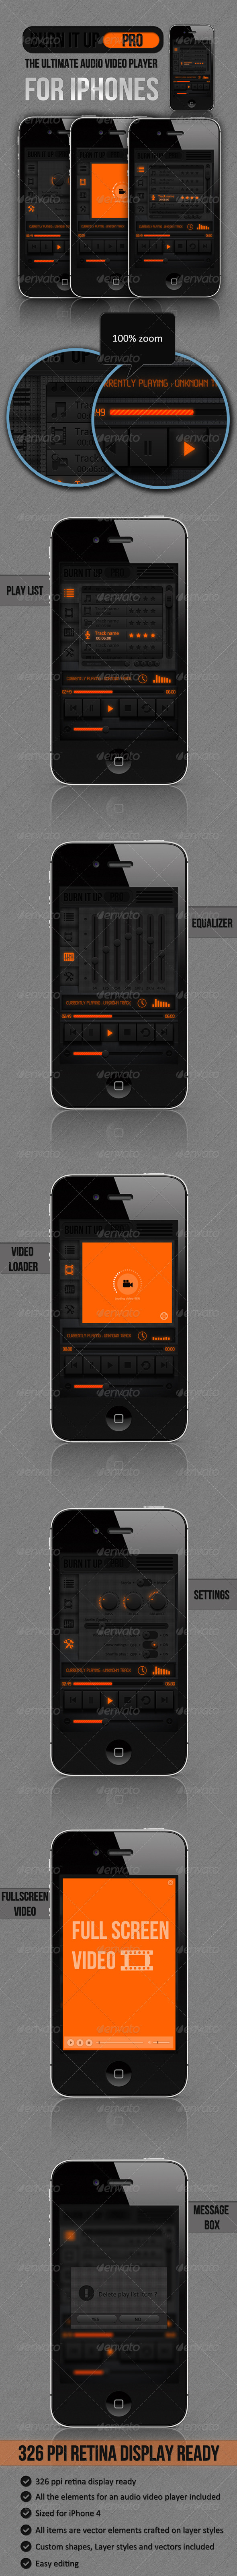 GraphicRiver Ui Kit For iPhones Burn It Up Pro 2433314